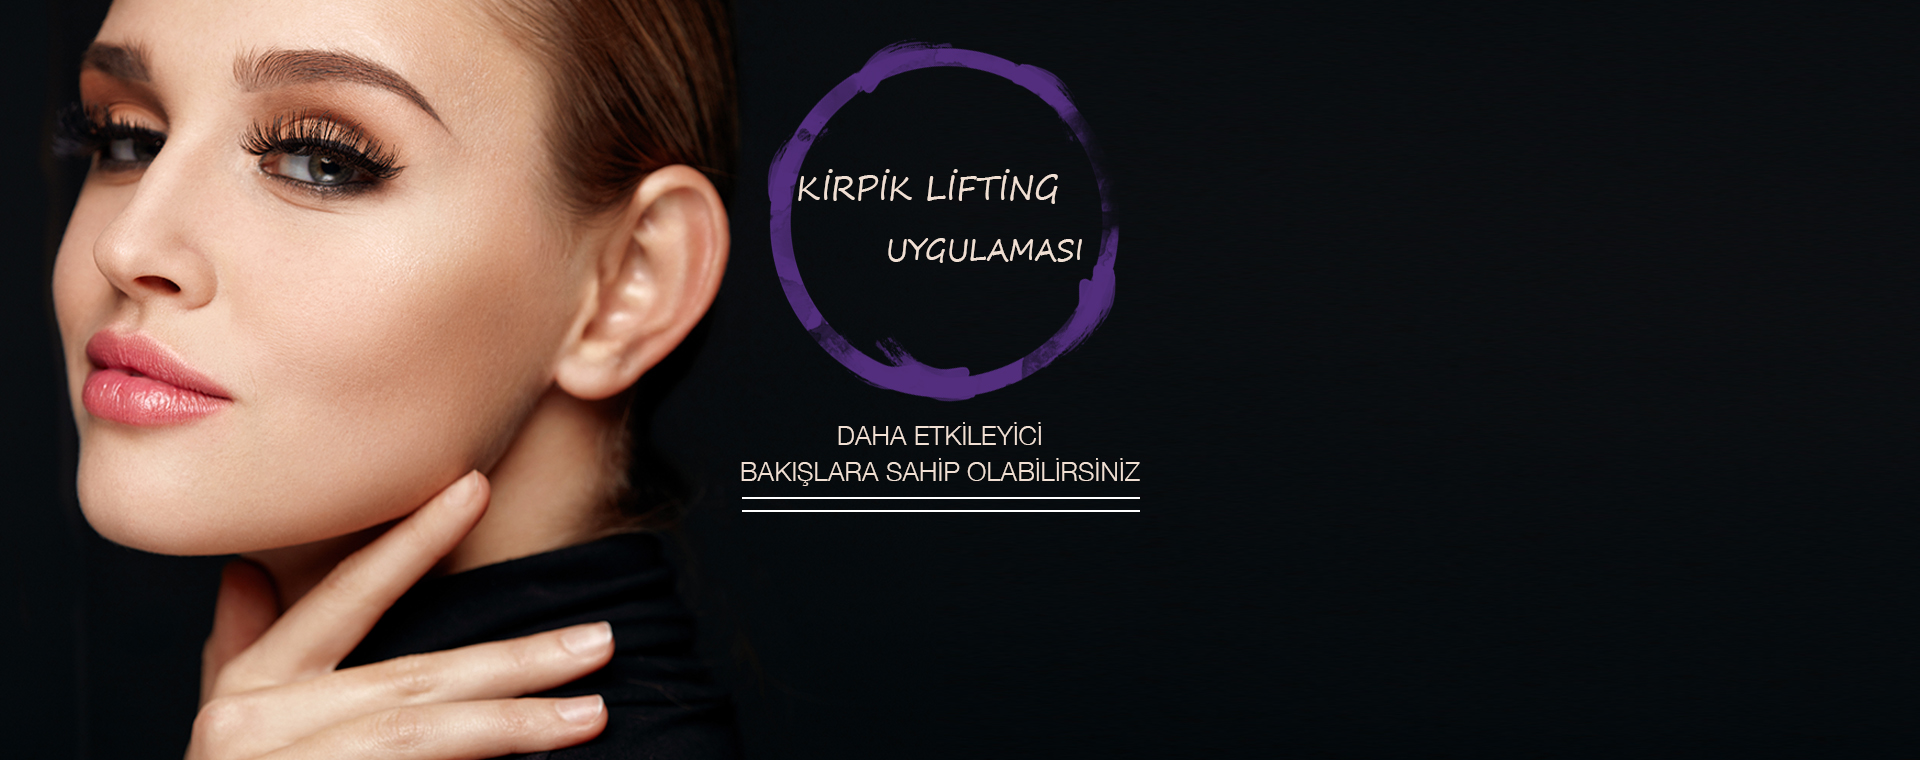 Kirpik Lifting